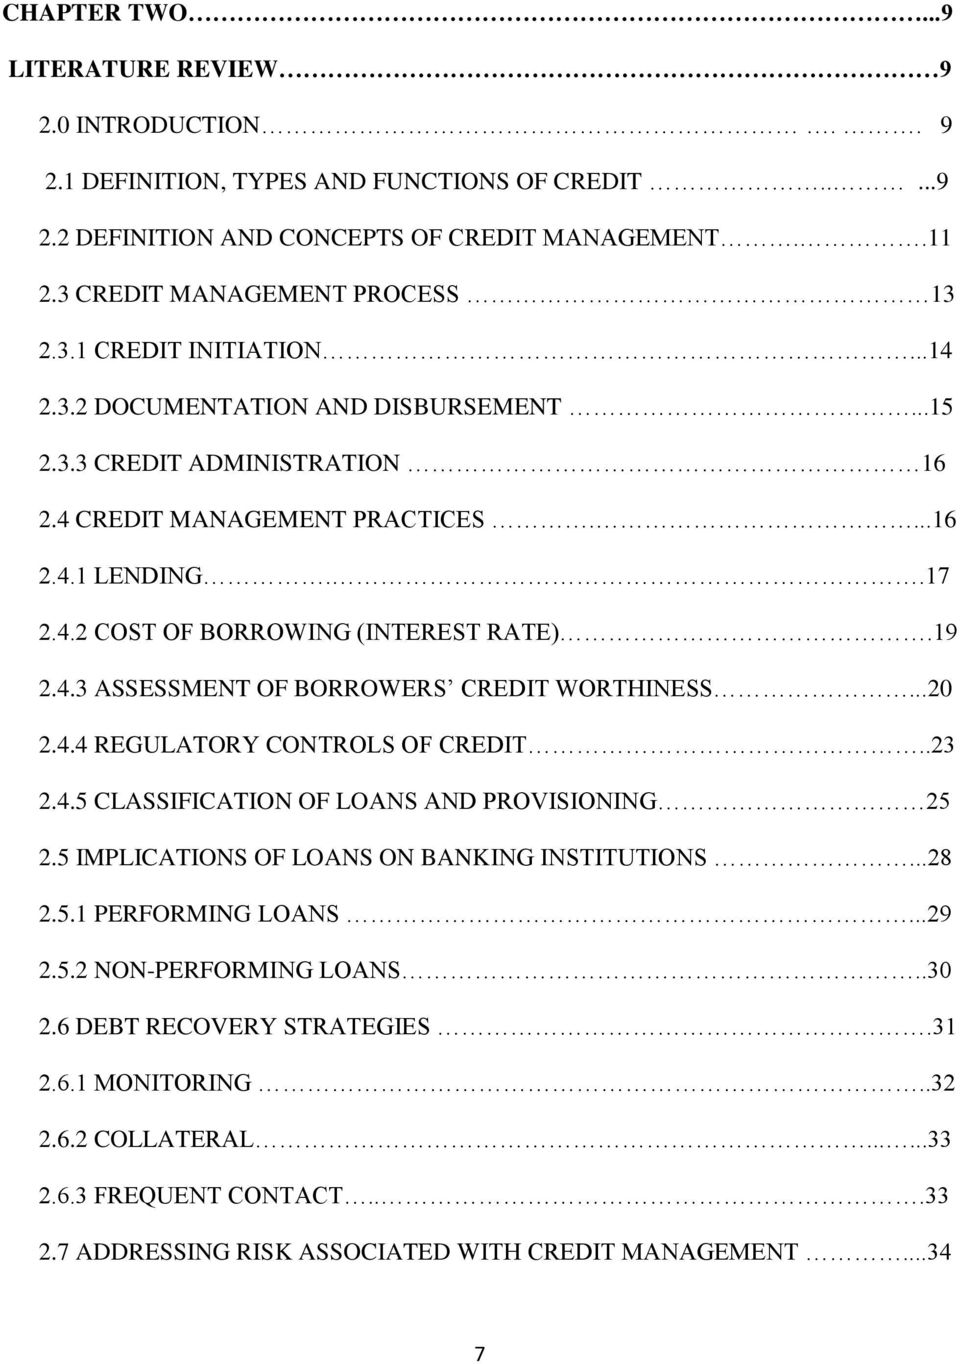 ..20 2.4.4 REGULATORY CONTROLS OF CREDIT..23 2.4.5 CLASSIFICATION OF LOANS AND PROVISIONING 25 2.5 IMPLICATIONS OF LOANS ON BANKING INSTITUTIONS...28 2.5.1 PERFORMING LOANS...29 2.5.2 NON-PERFORMING LOANS.